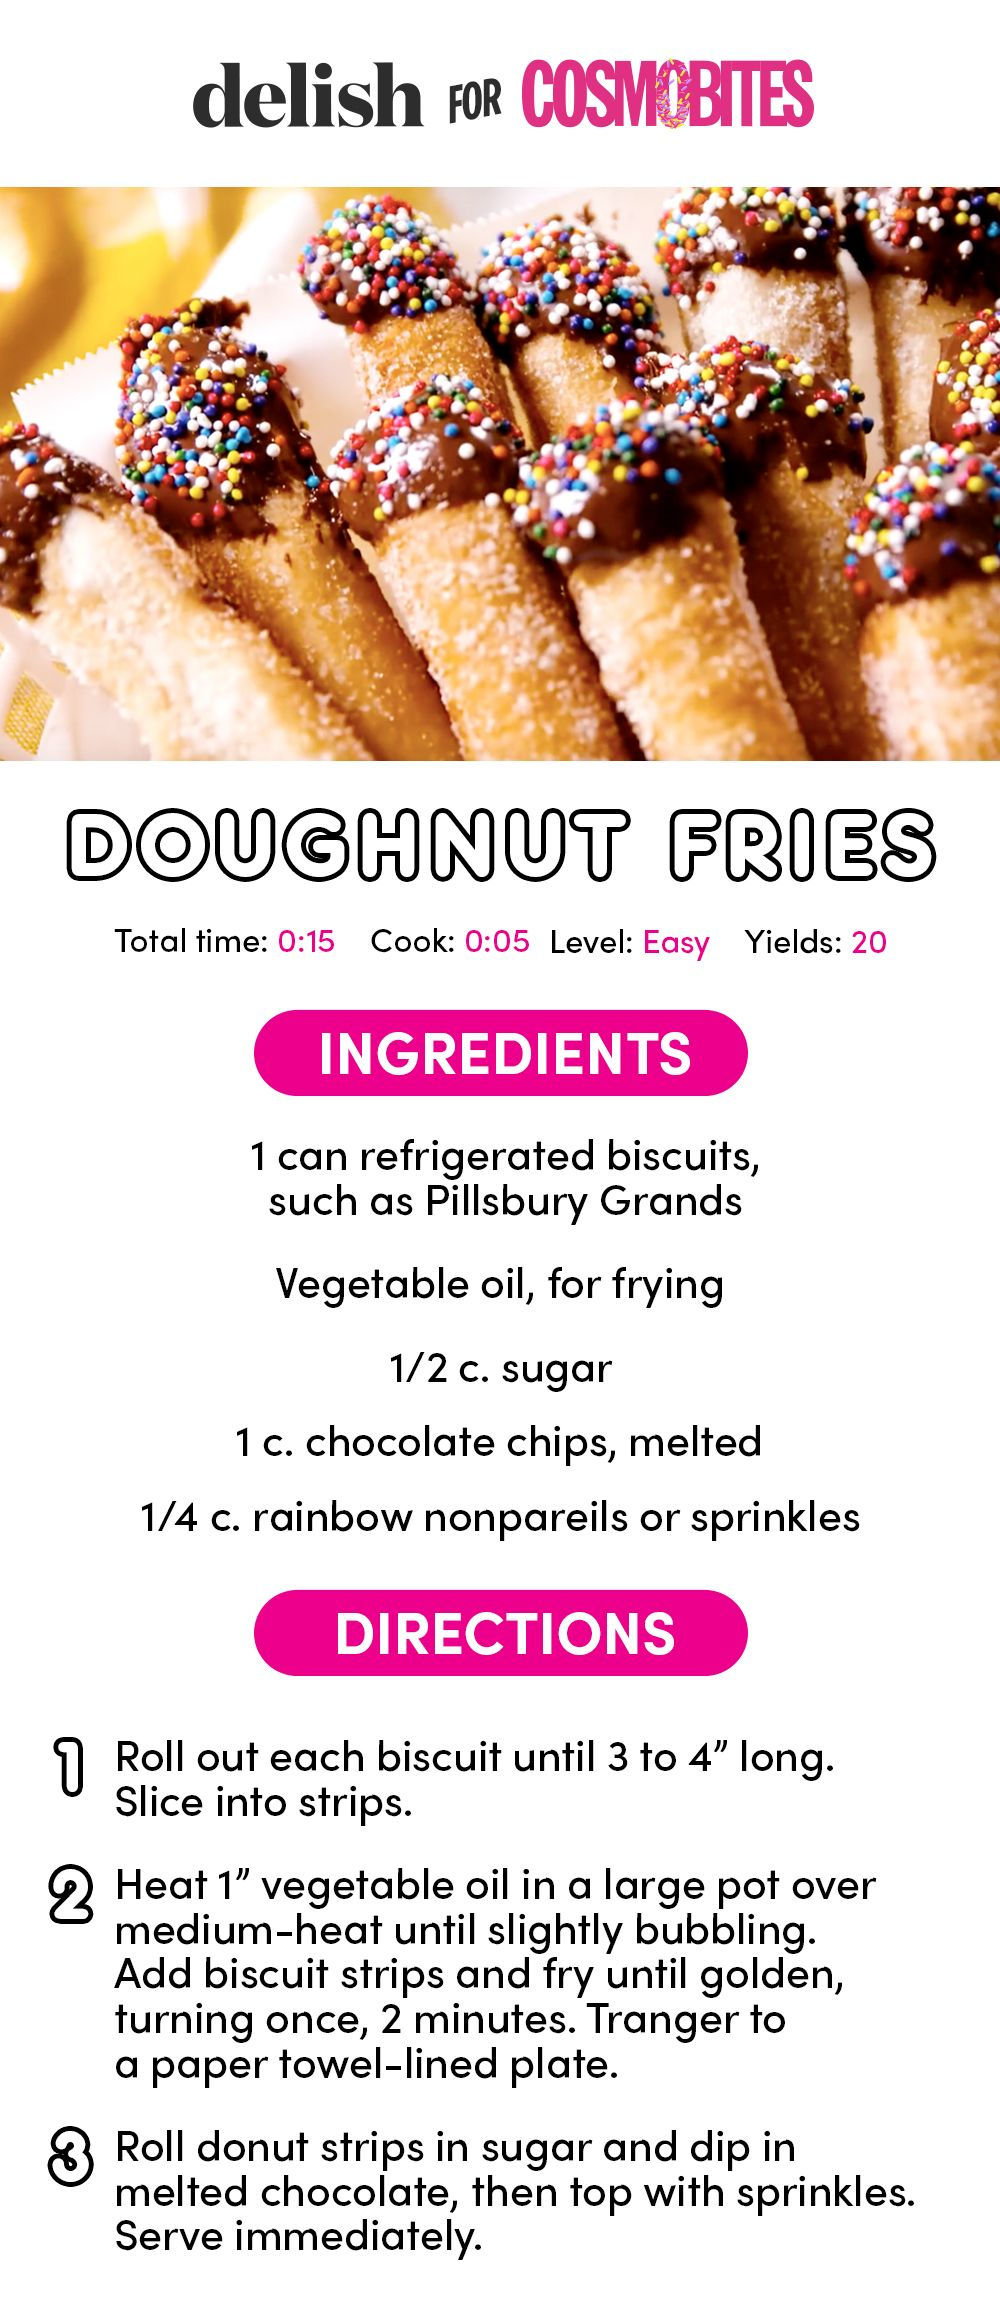 Doughnut Fries Are the Cutest Sweet Snack